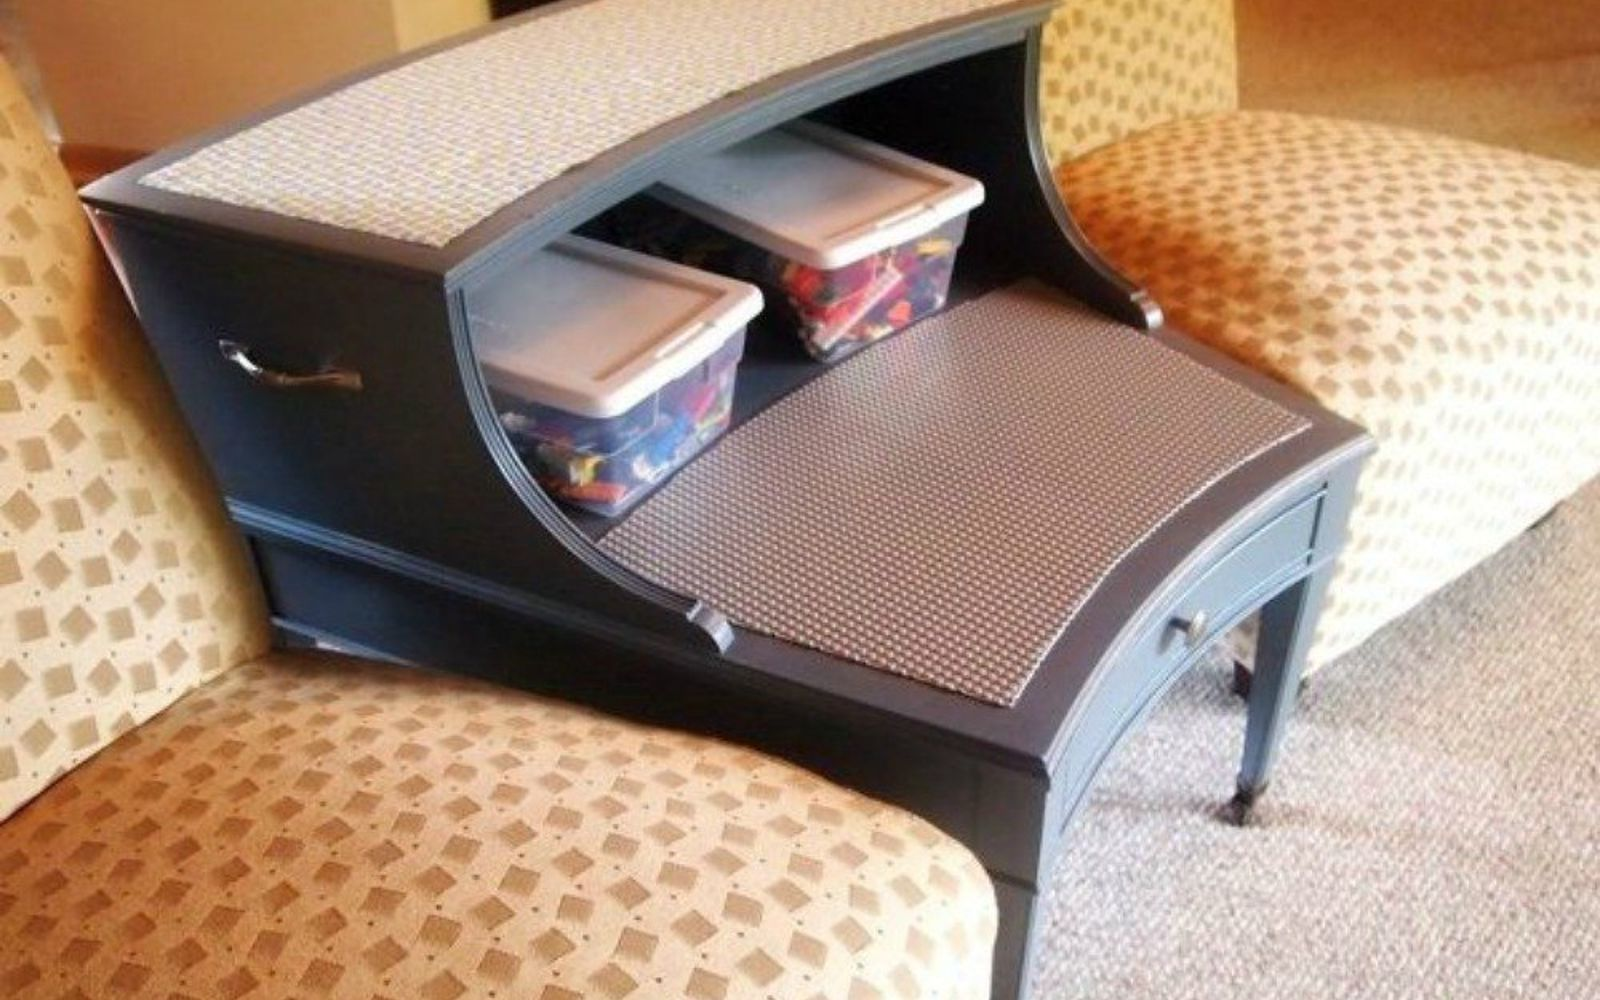 s 11 amazing toy storage ideas from highly organized moms, organizing, storage ideas, Turn an end table into a Lego table